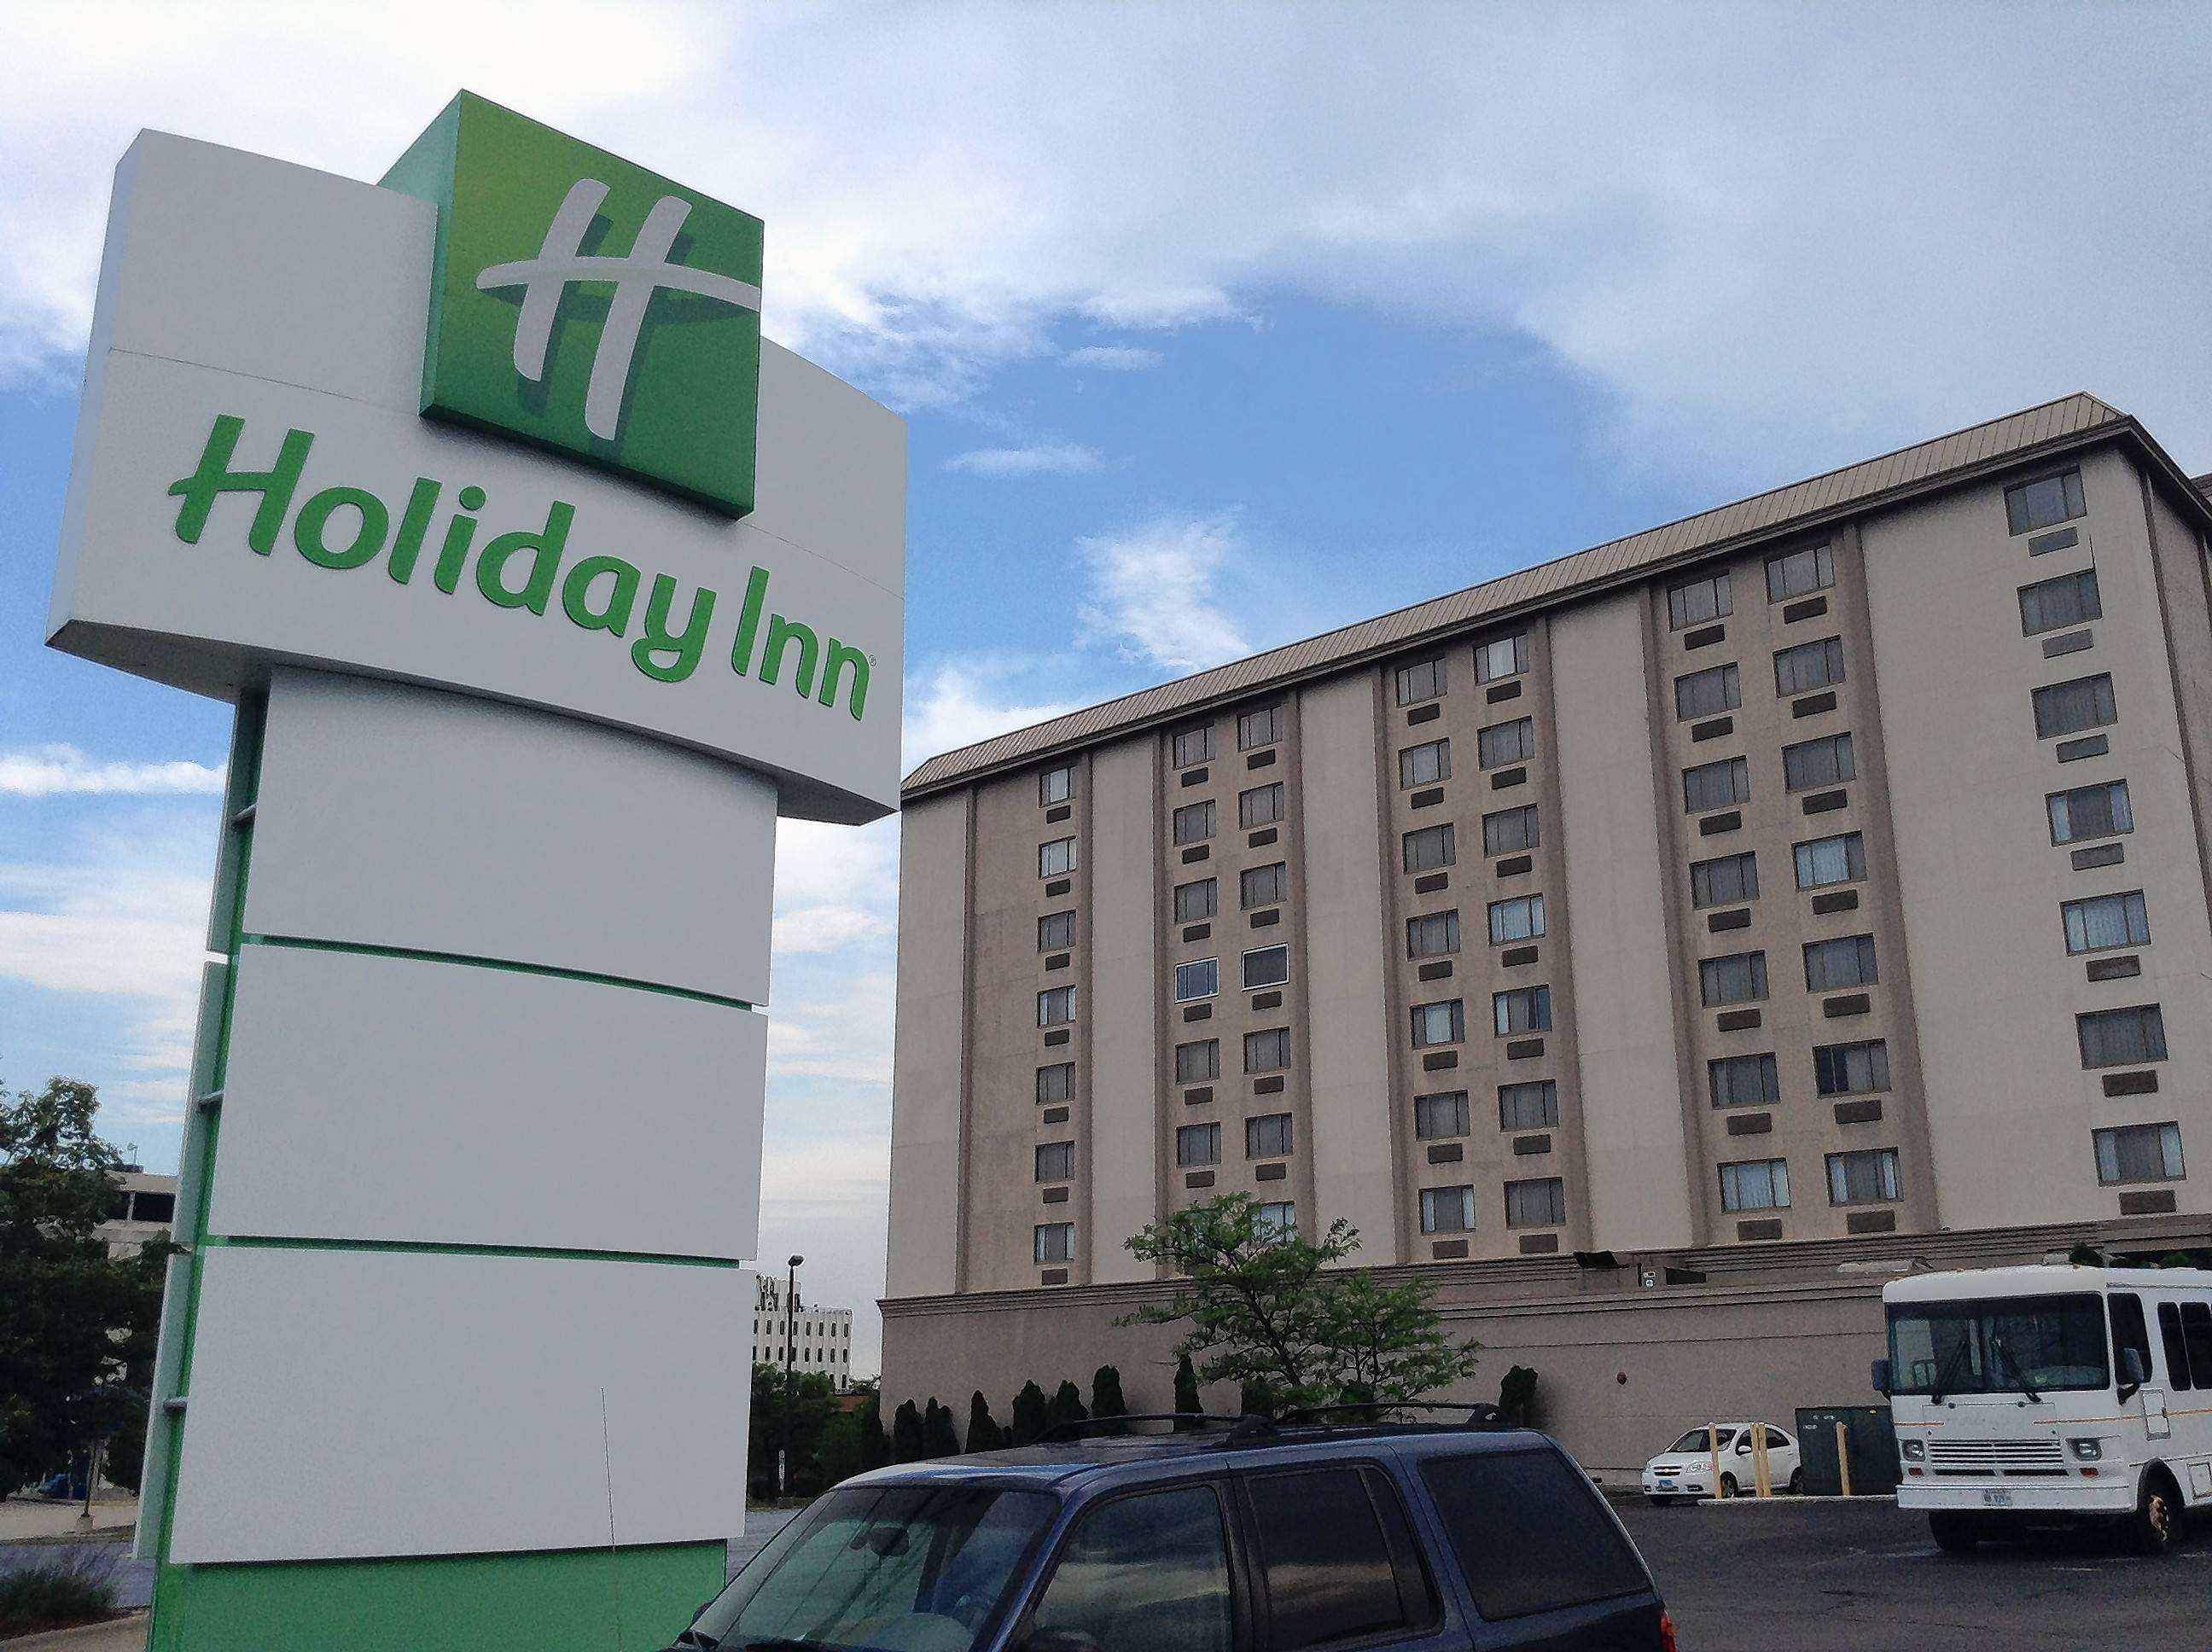 The nine-story Holiday Inn on Algonquin Road in Rolling Meadows will be converted to an Aloft hotel under redevelopment plans. Aldermen this week endorsed the developer's application for a Cook County 7b tax incentive.